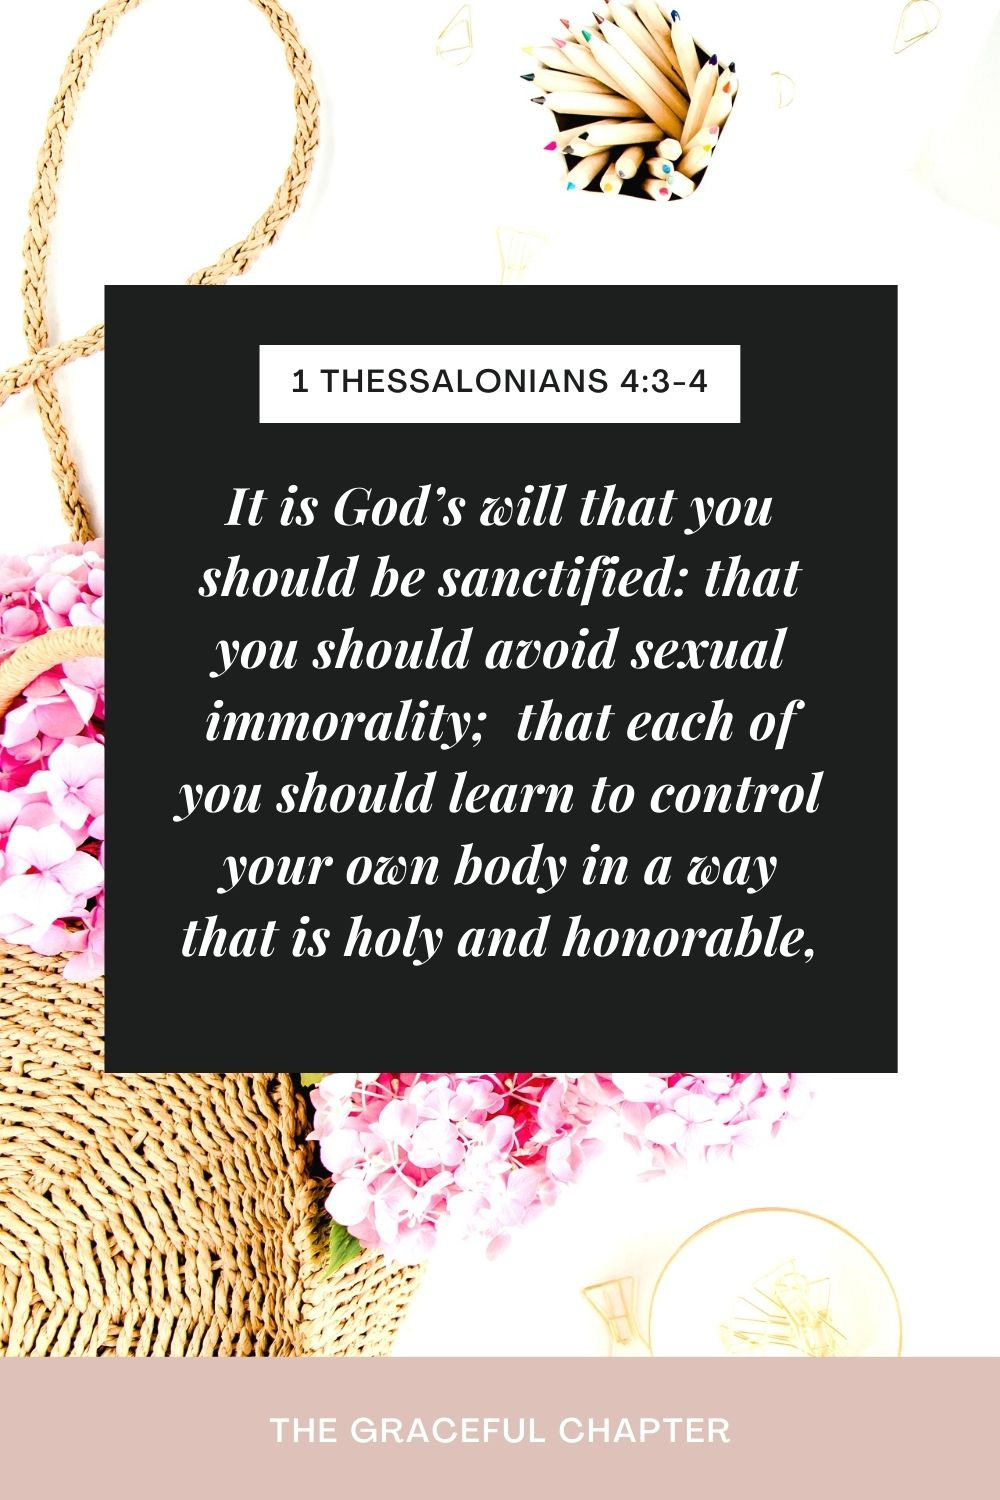 It is God's will that you should be sanctified: that you should avoid sexual immorality;  that each of you should learn to control your own body in a way that is holy and honorable, 1 Thessalonians 4:3-4